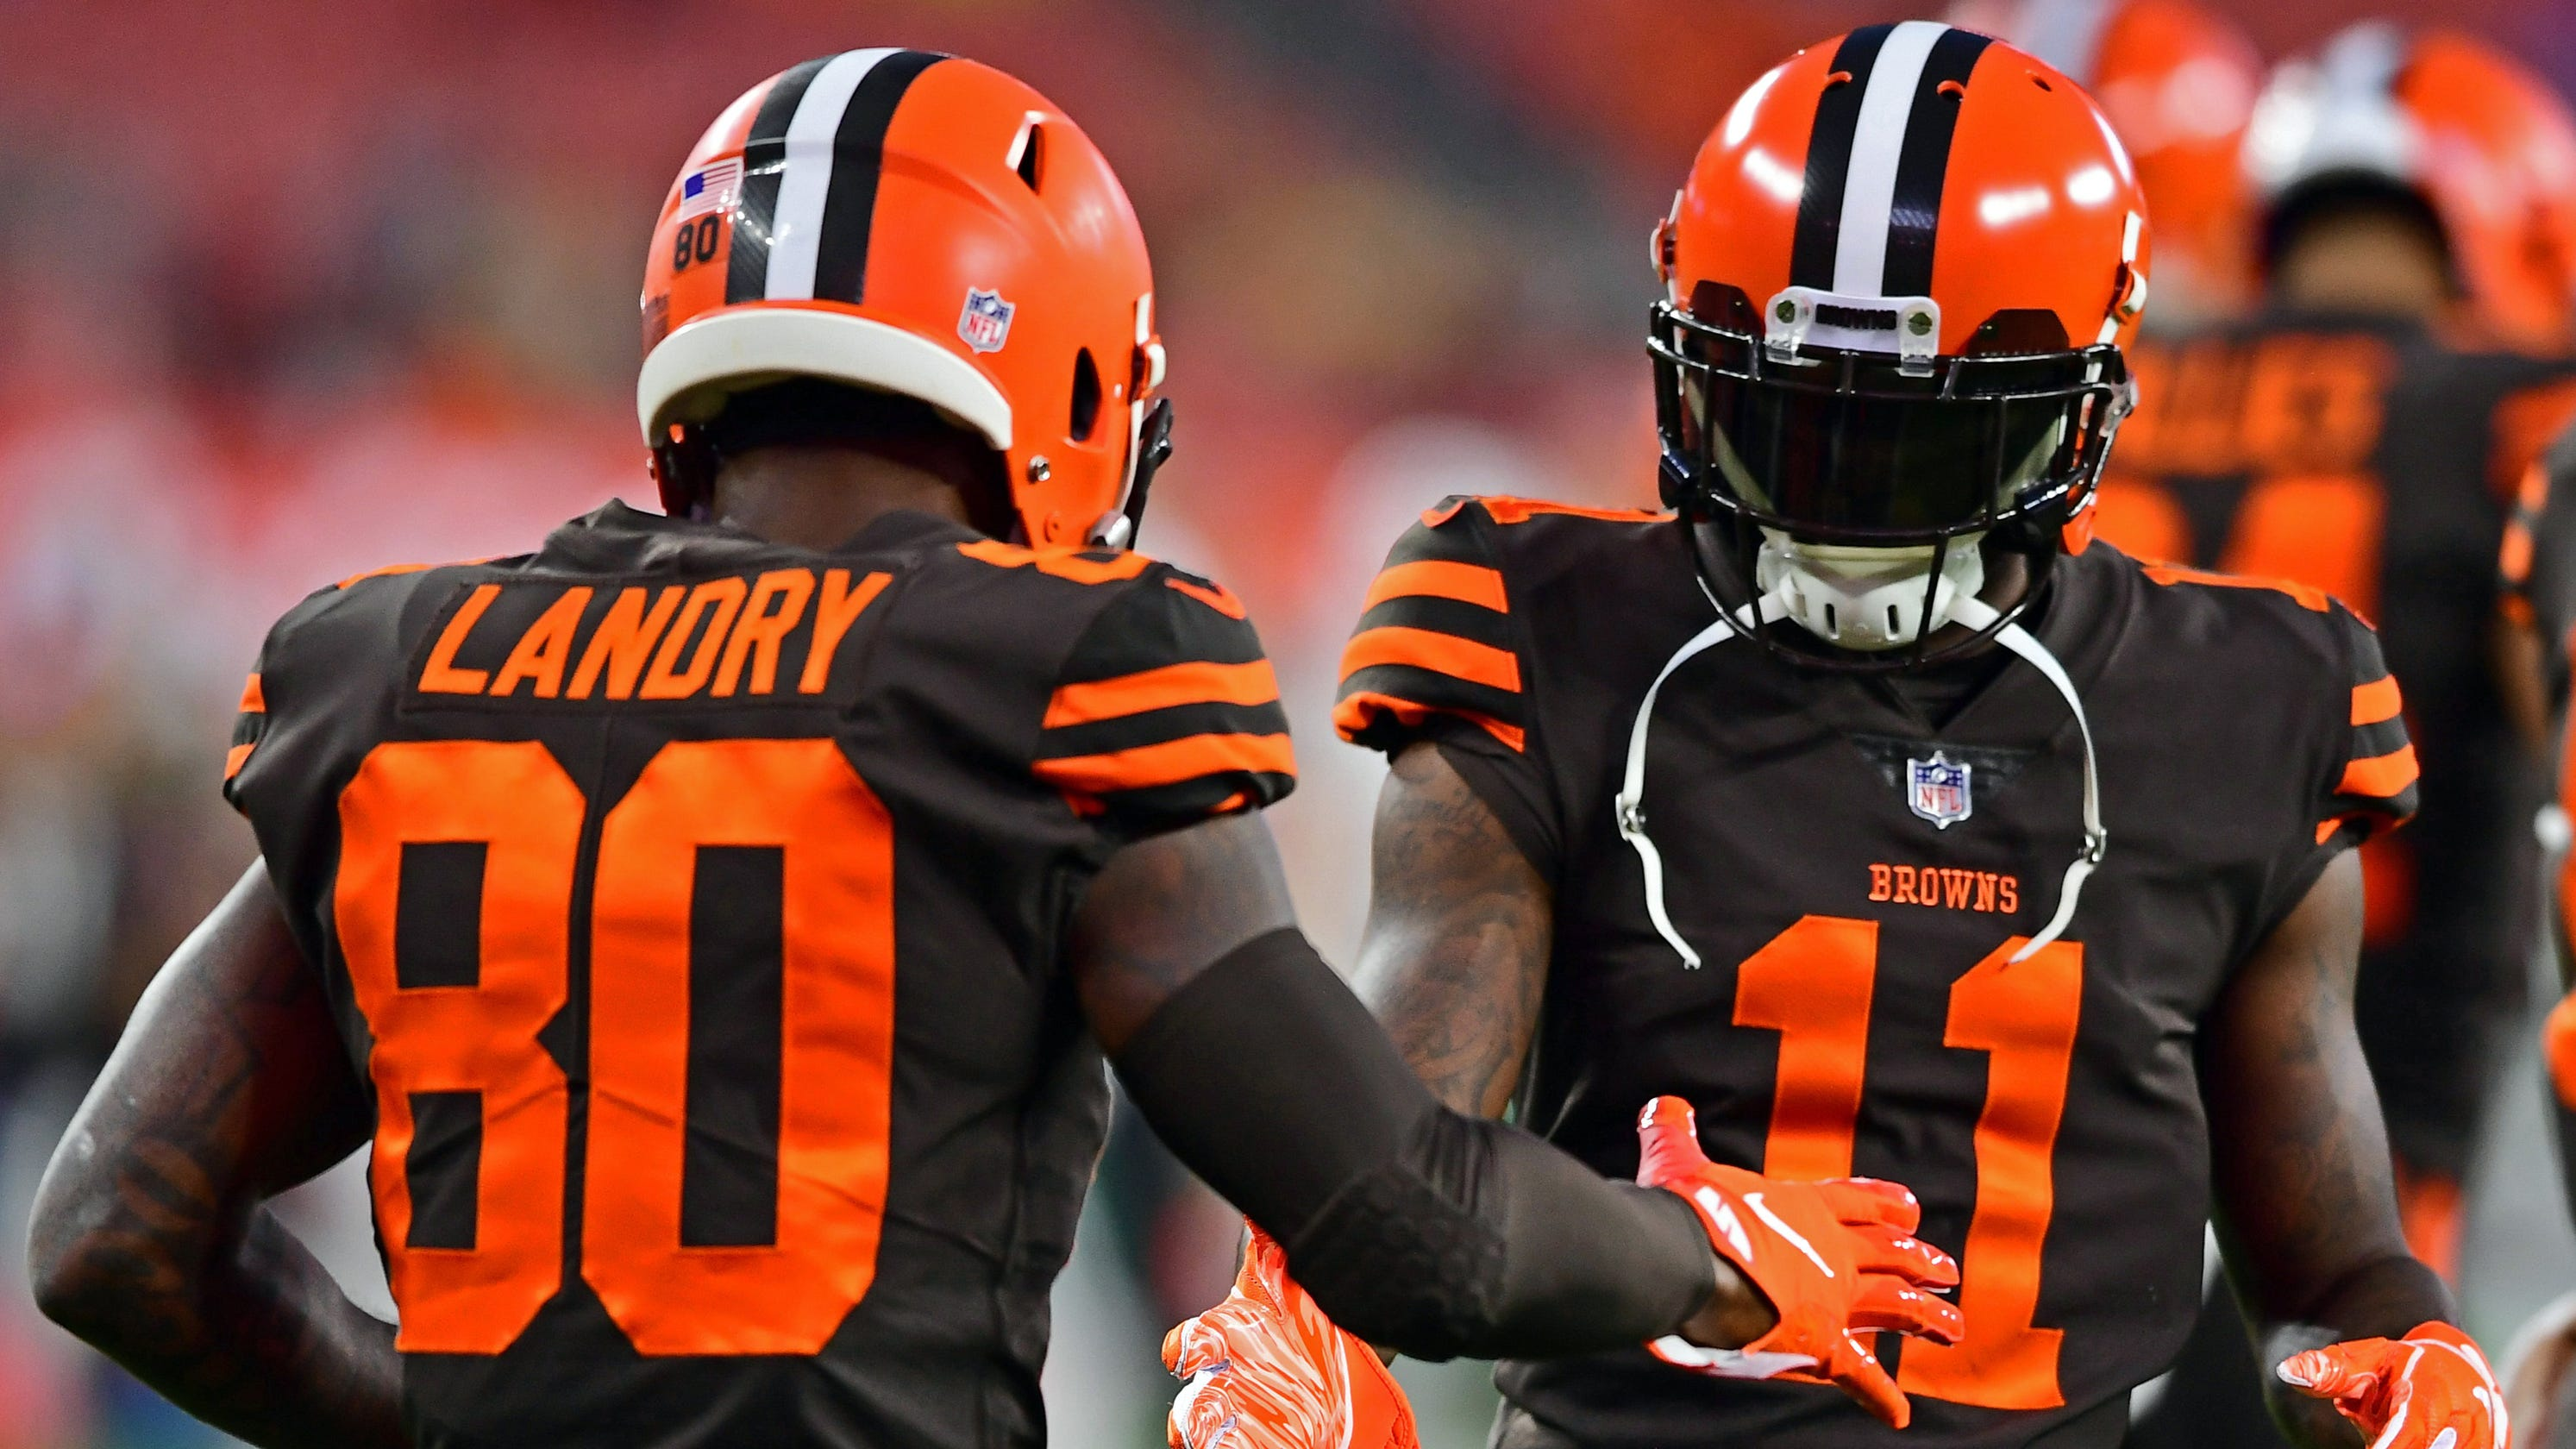 795cbb698 Cleveland Browns finally wear Color Rush uniforms they ve waited years to  debut